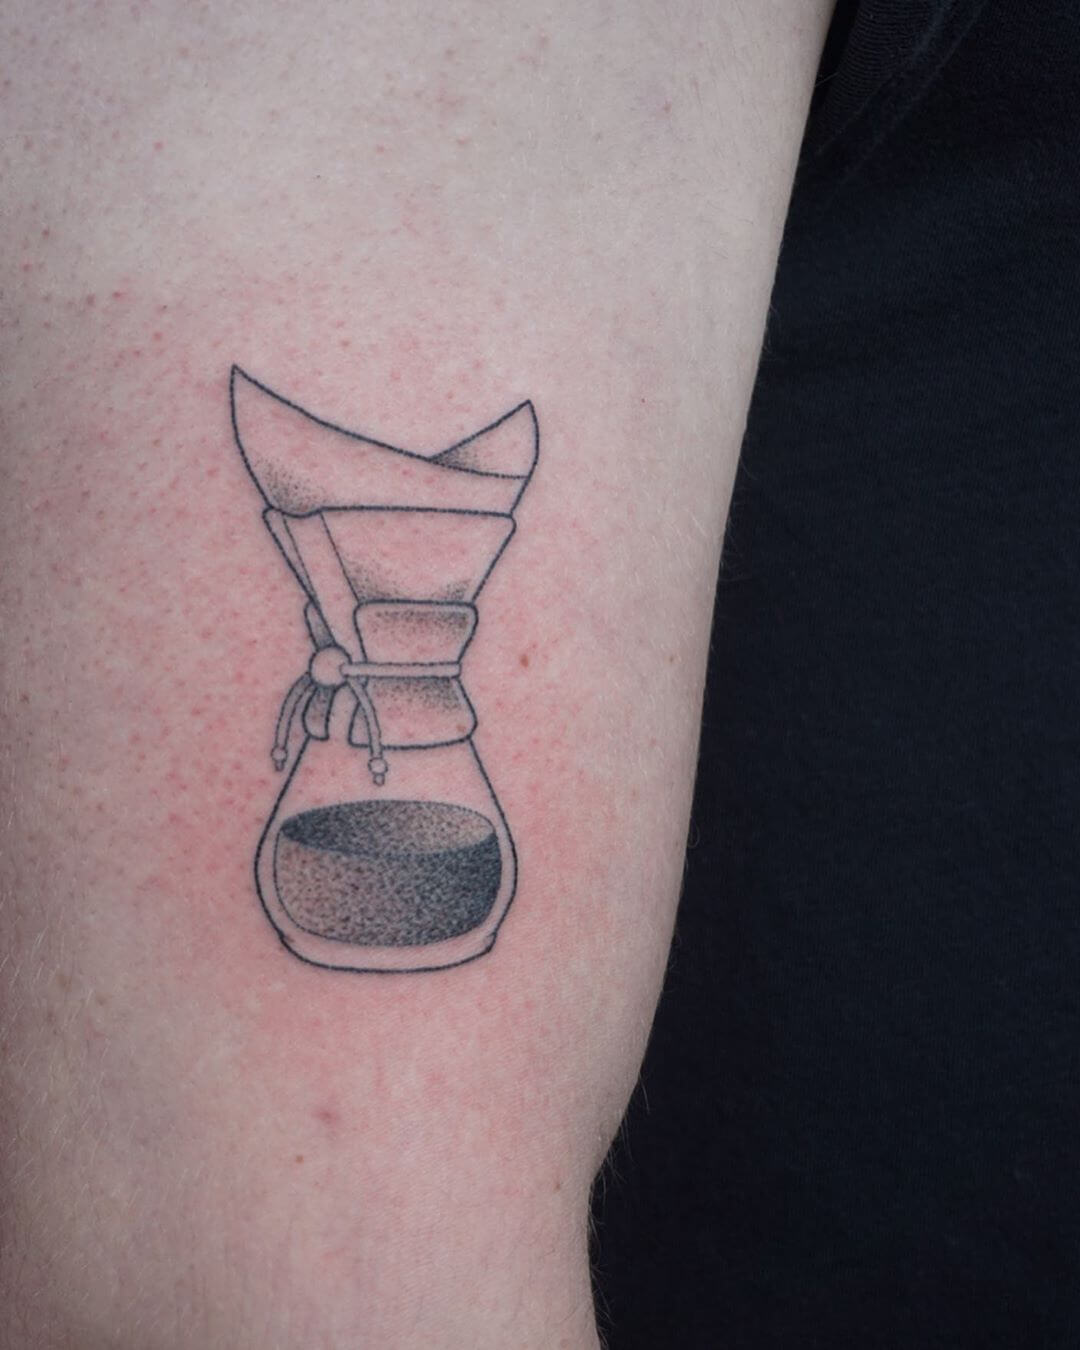 Tattoo of a coffee pot with a filter